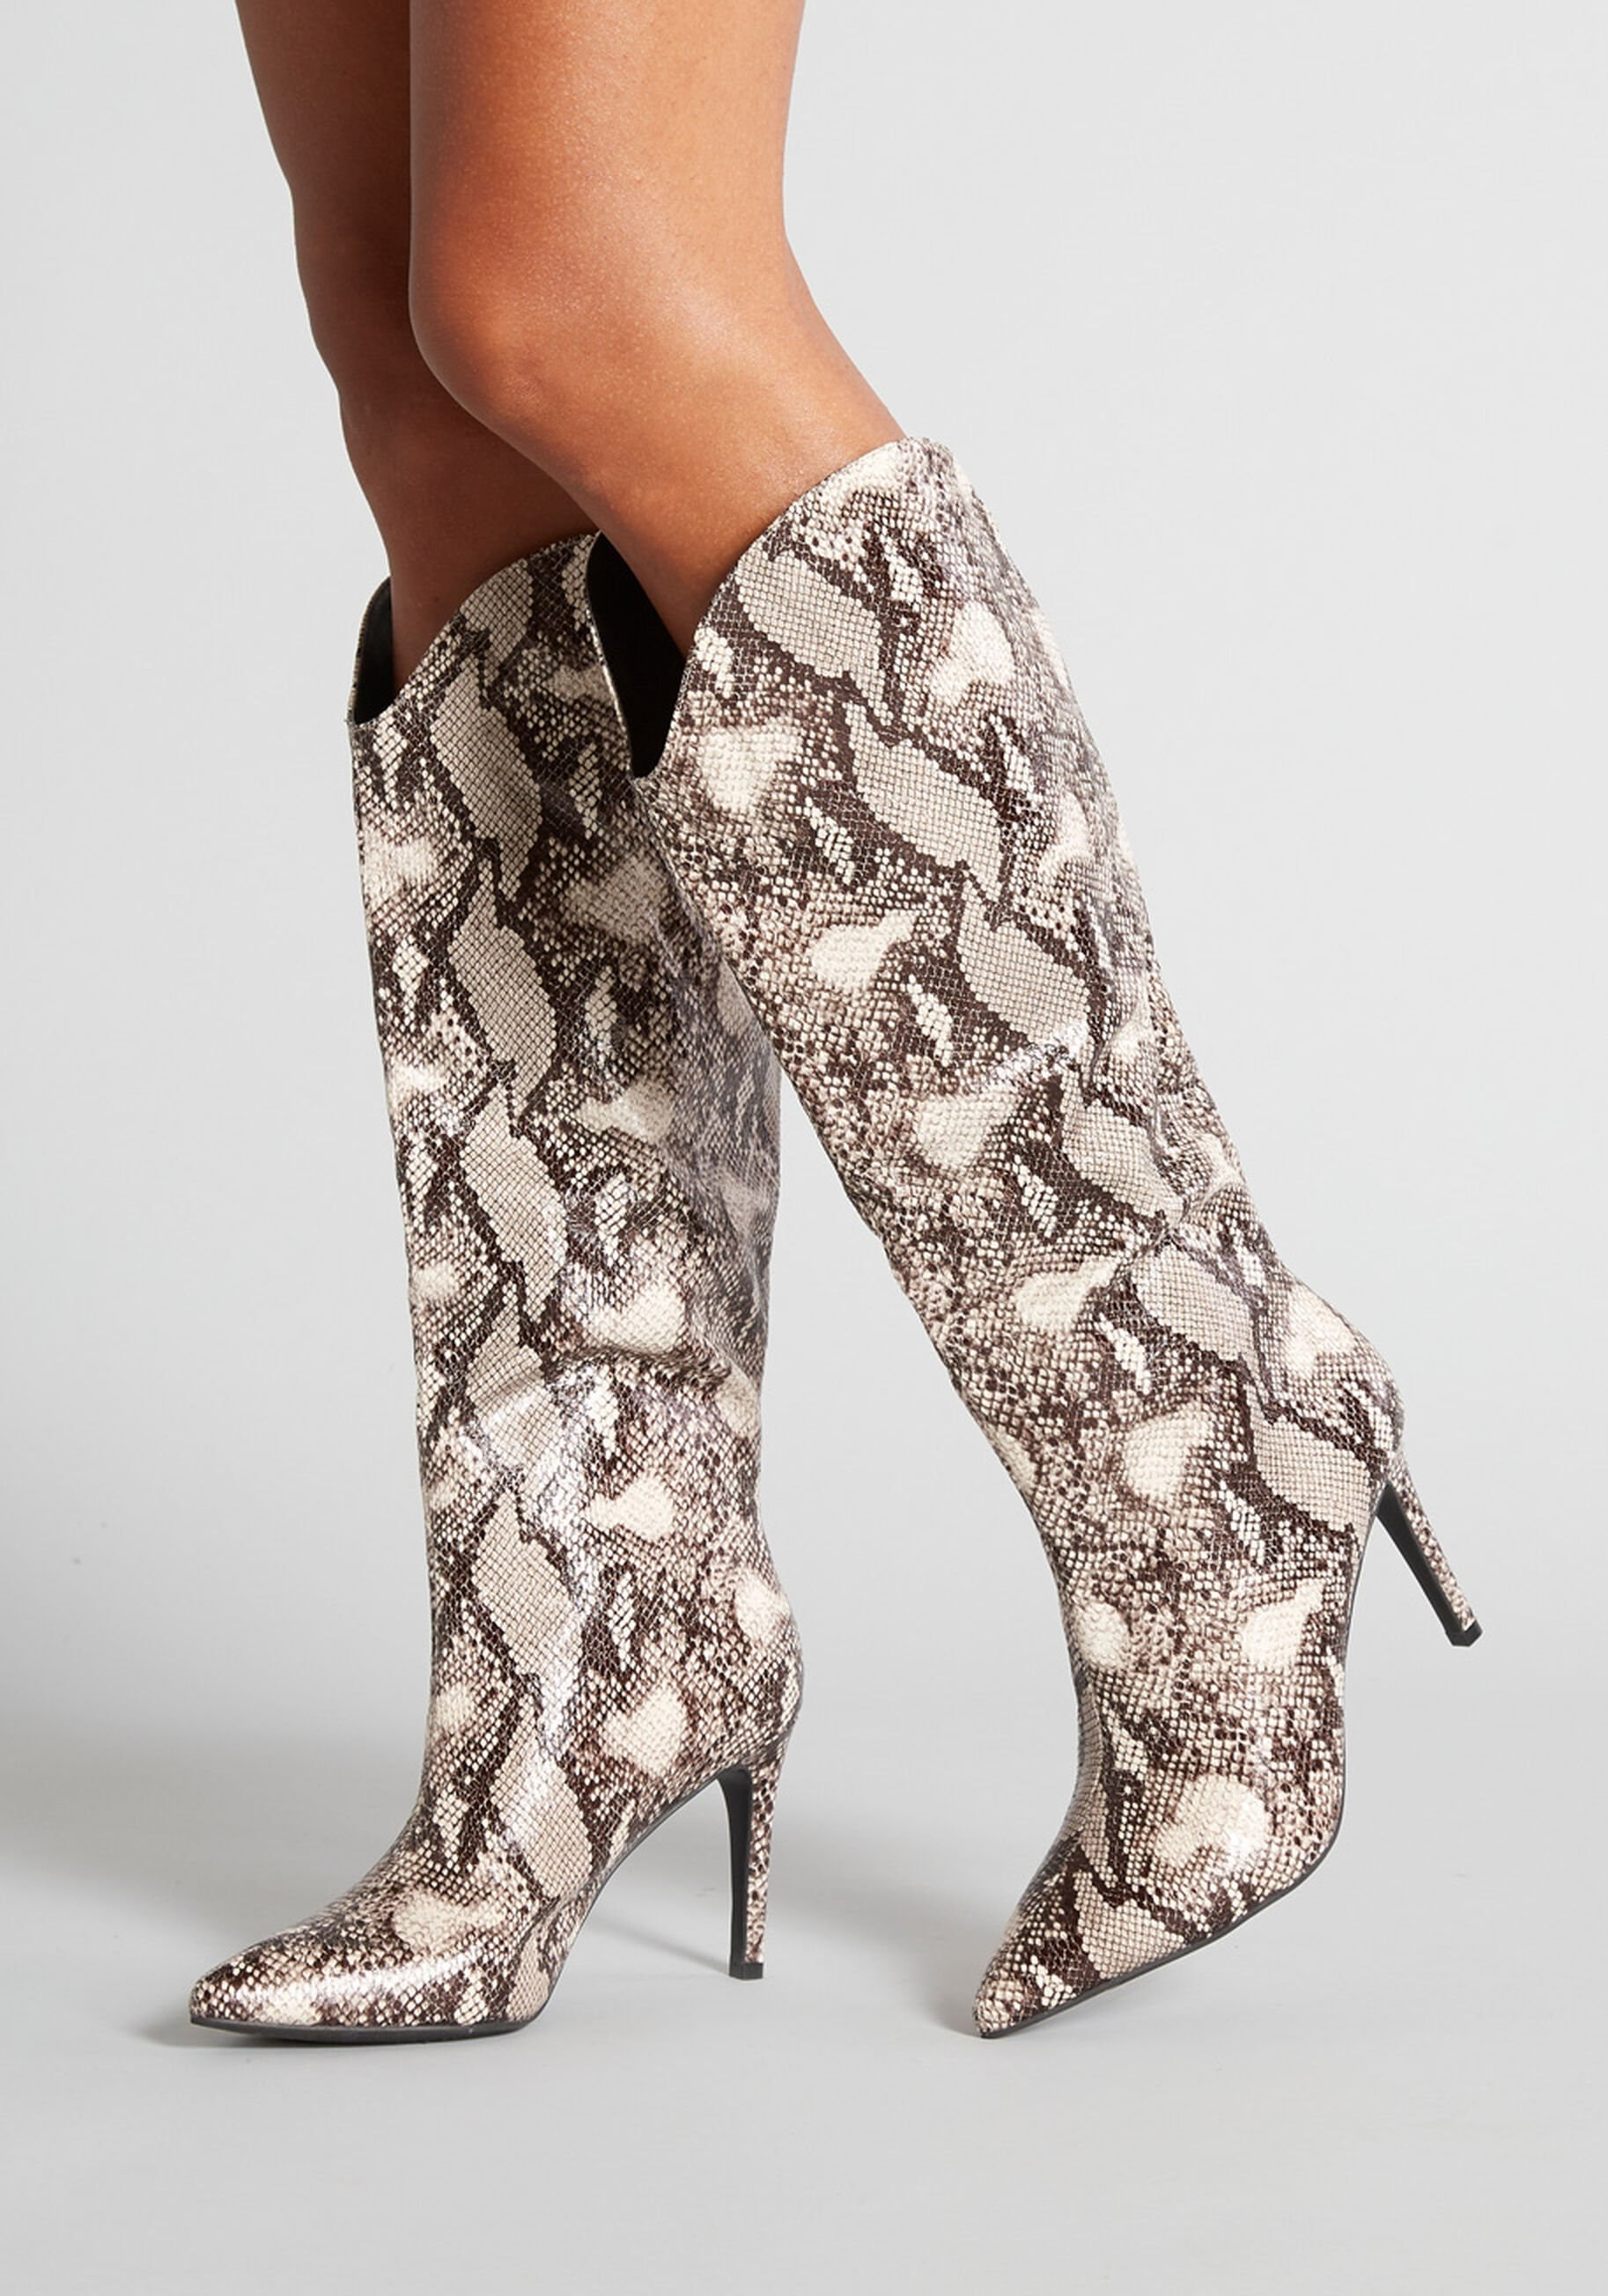 tall pointed snakeskin boots with a 3.25-inch stiletto heel